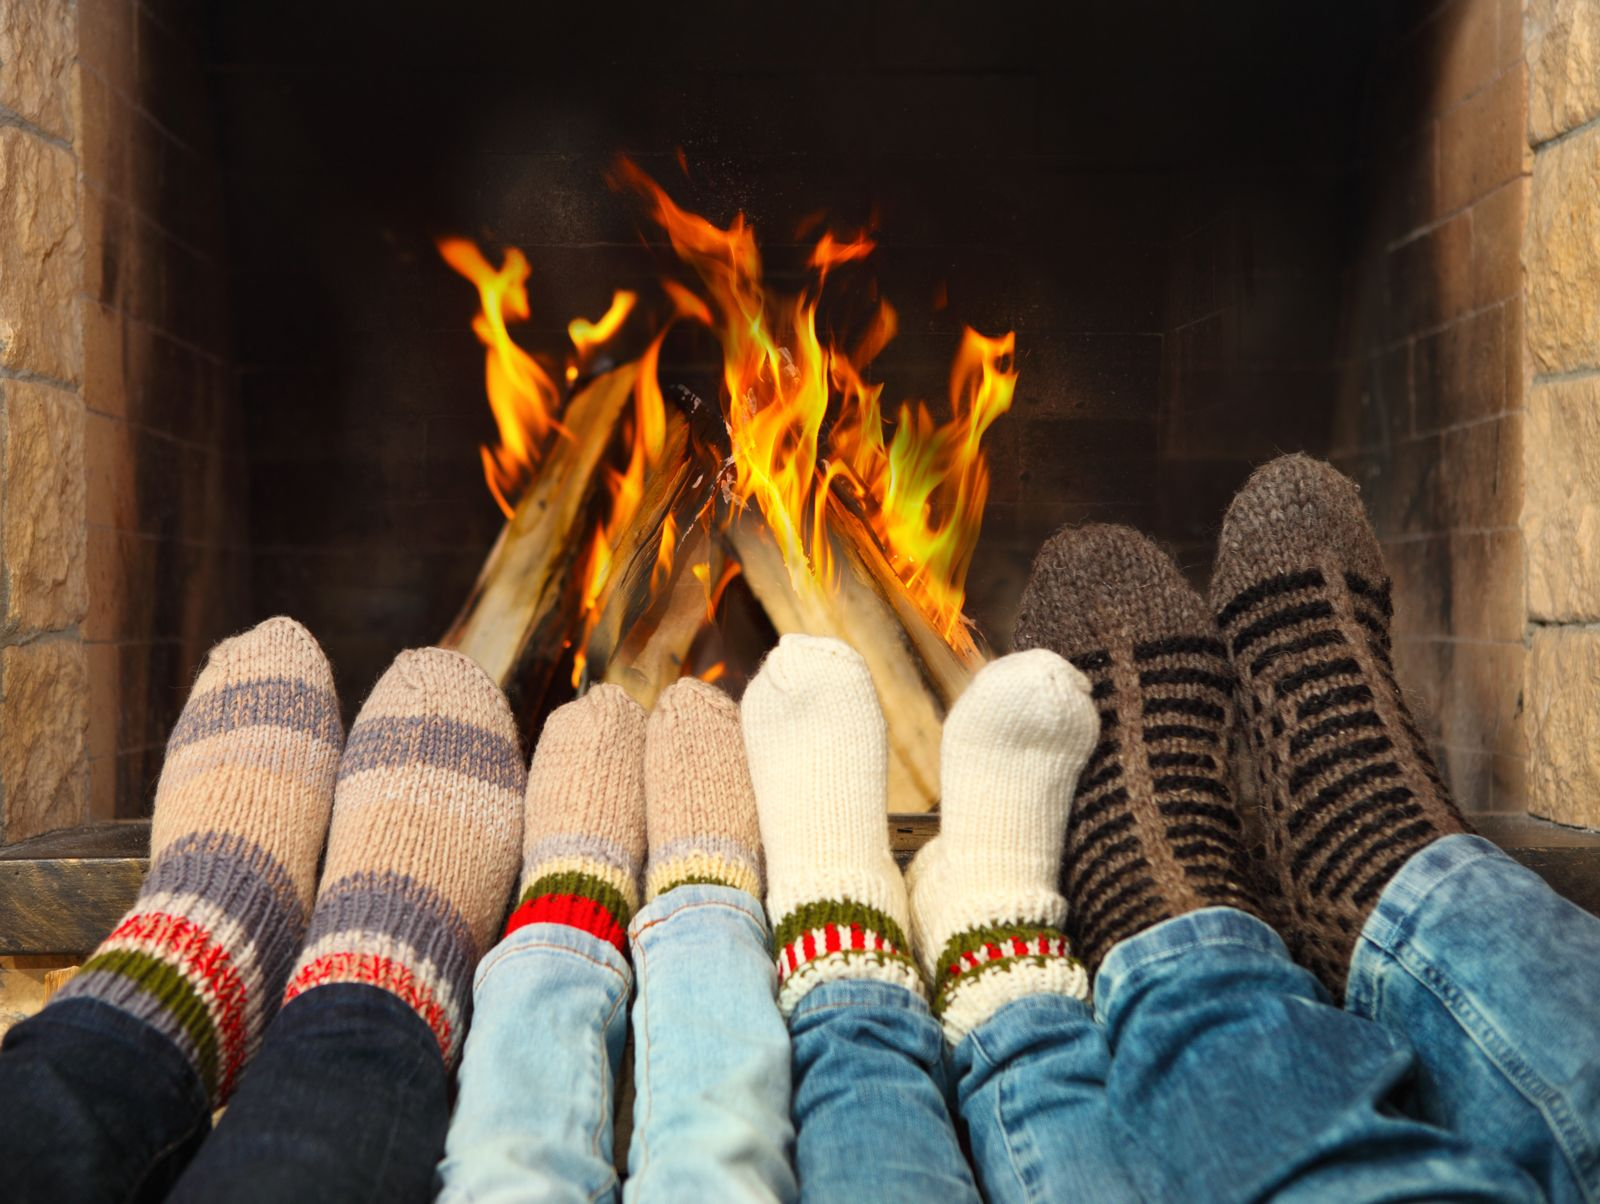 Four sets of feet wearing socks lined up in front of a fireplace